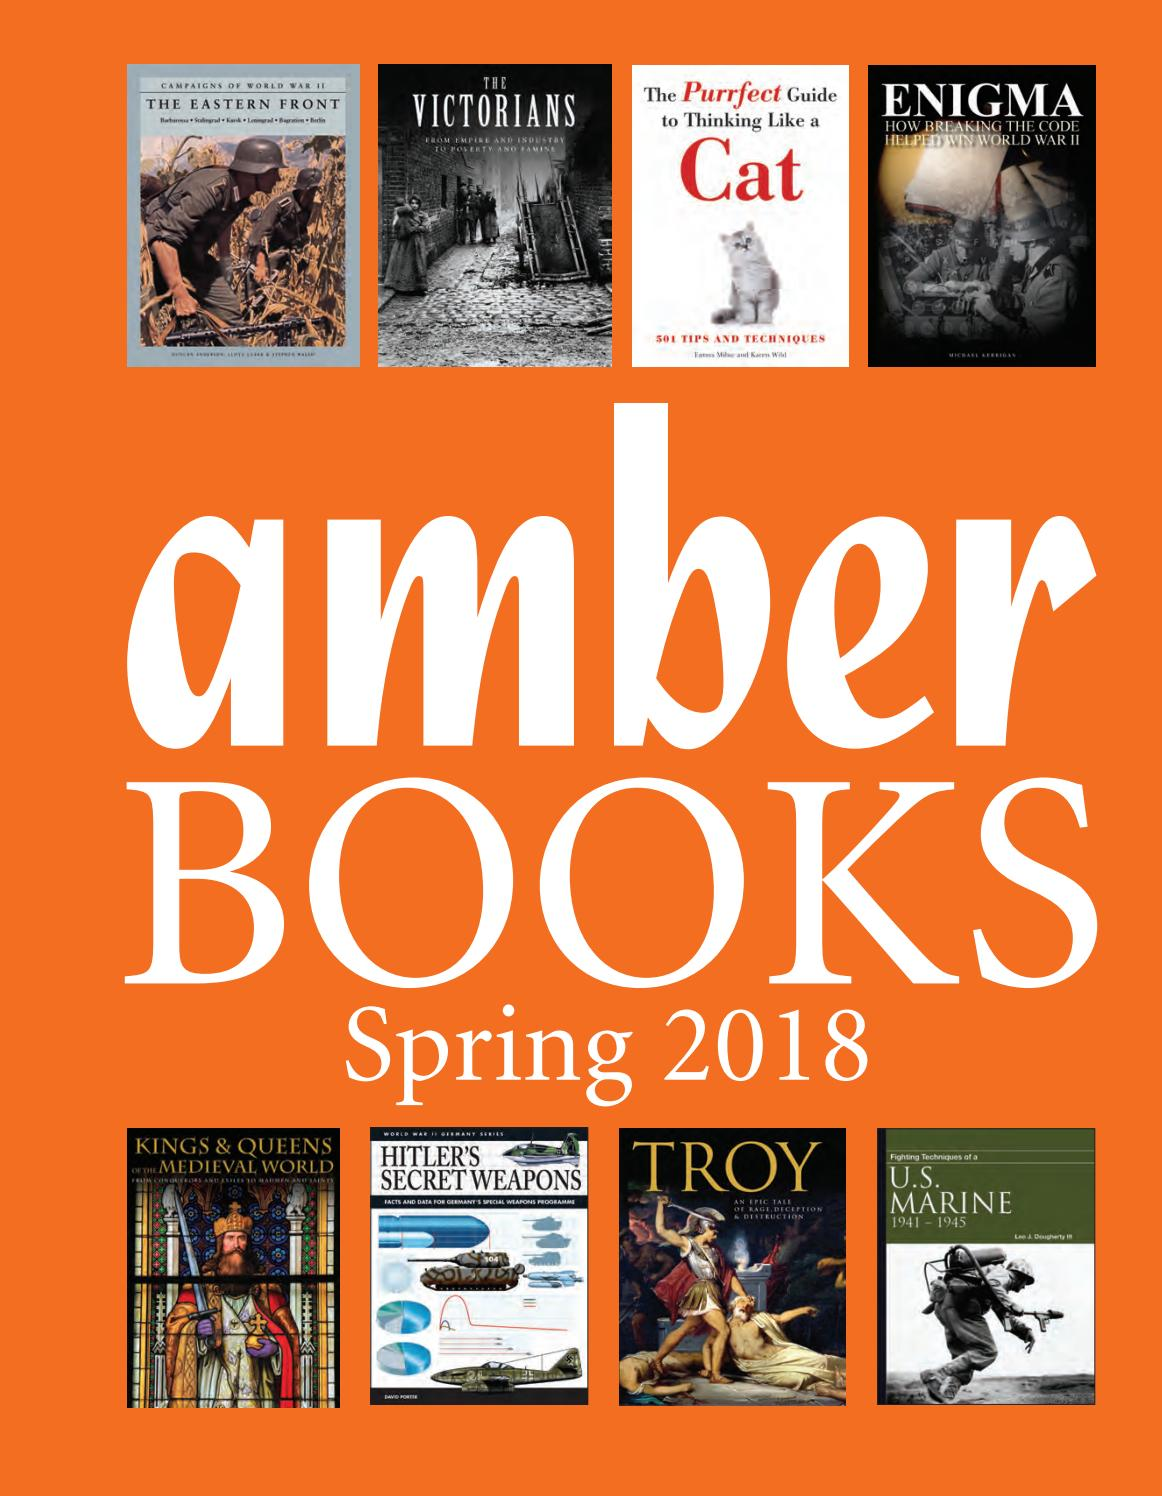 Amber Books Spring 2018 Catalogue by Gunnar Lie & Associates - issuu